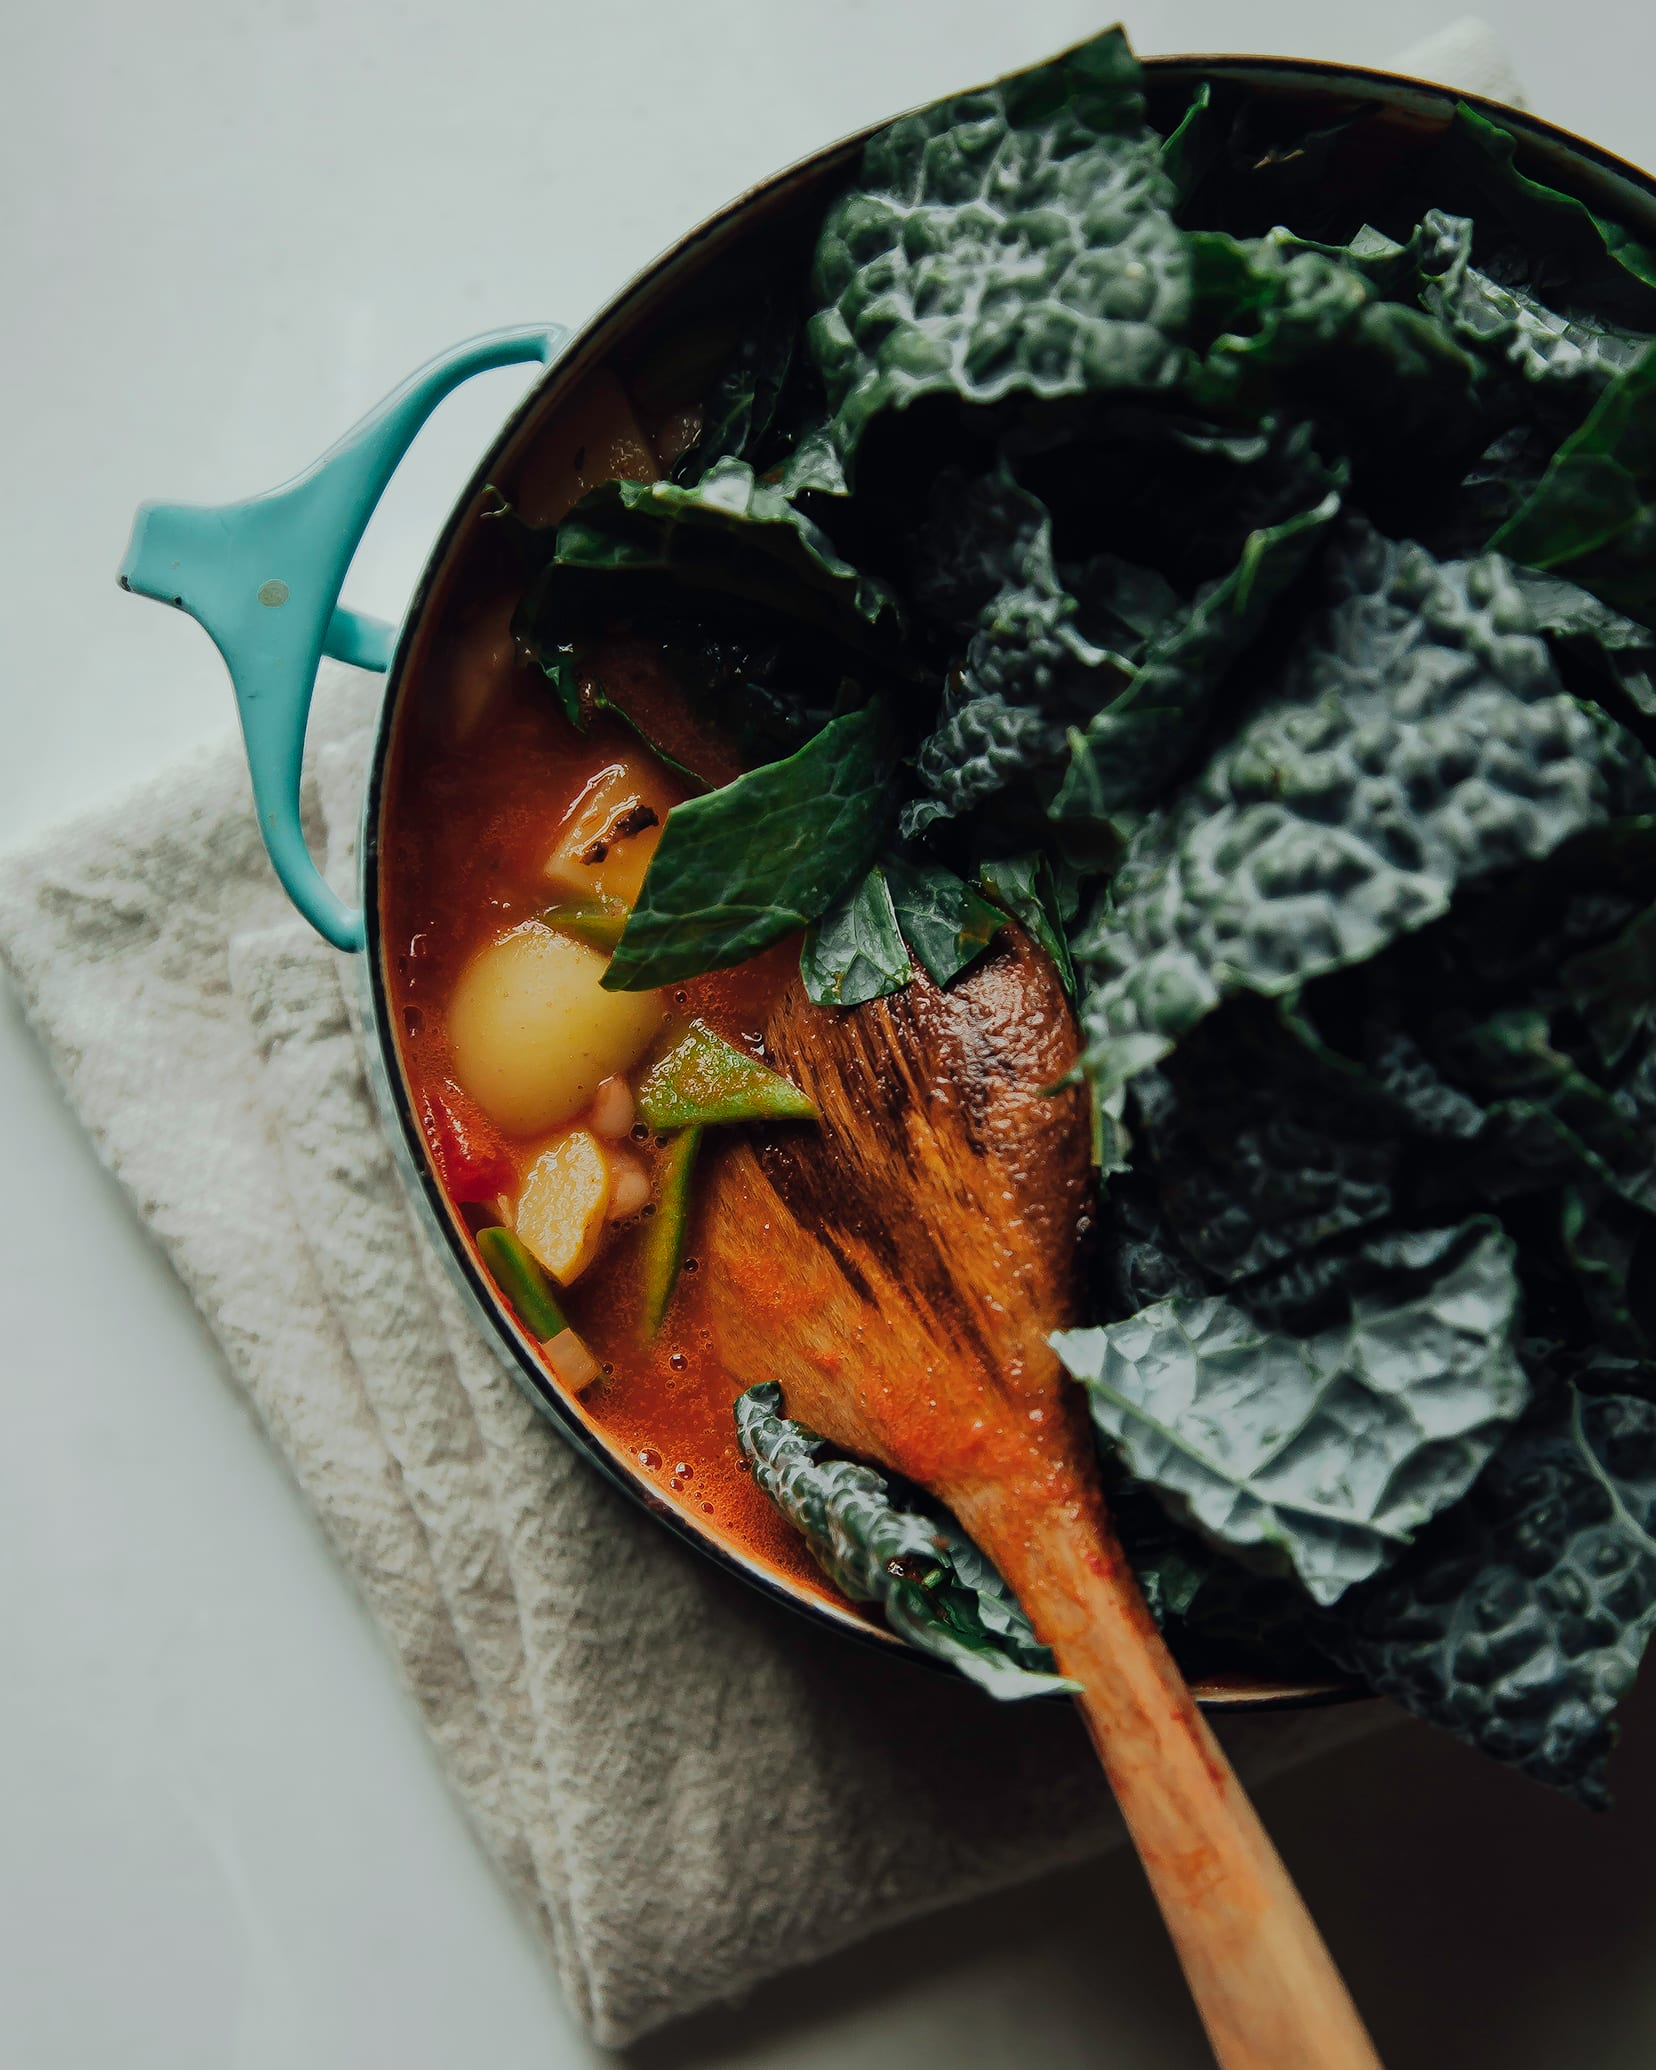 Image shows chopped kale being added to a pot of stew.